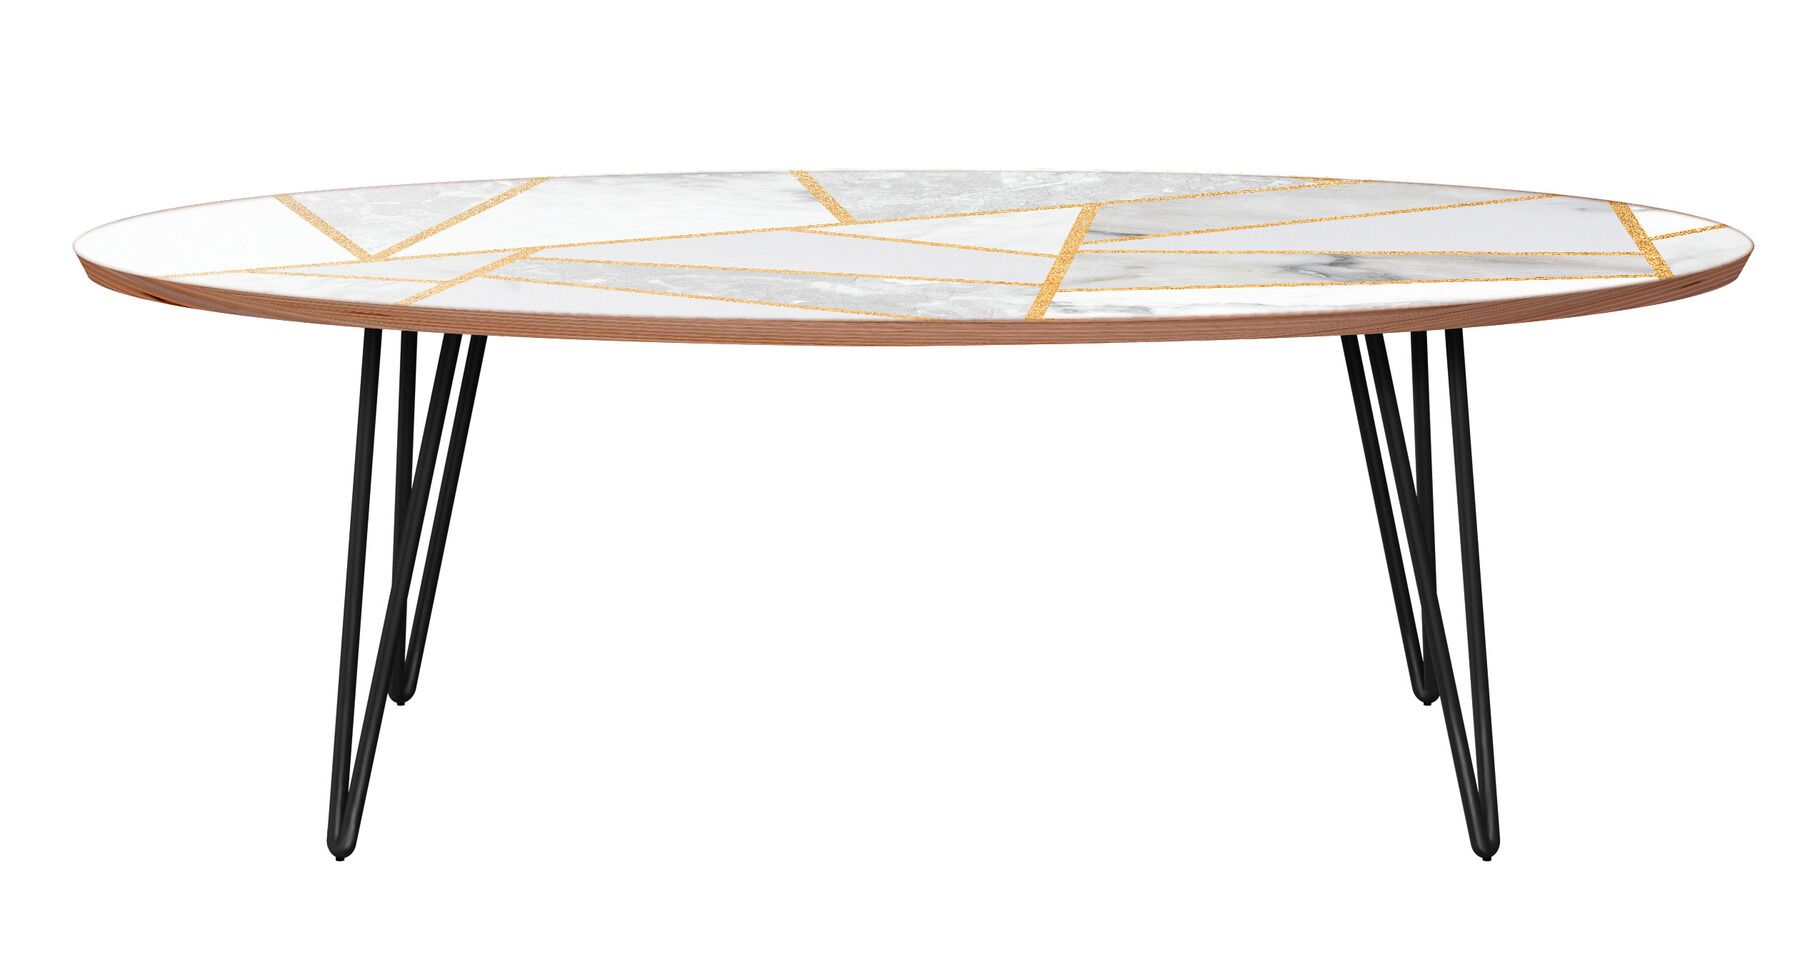 Mcgill Coffee Table Table Base Color: Black, Table Top Color: Walnut/White